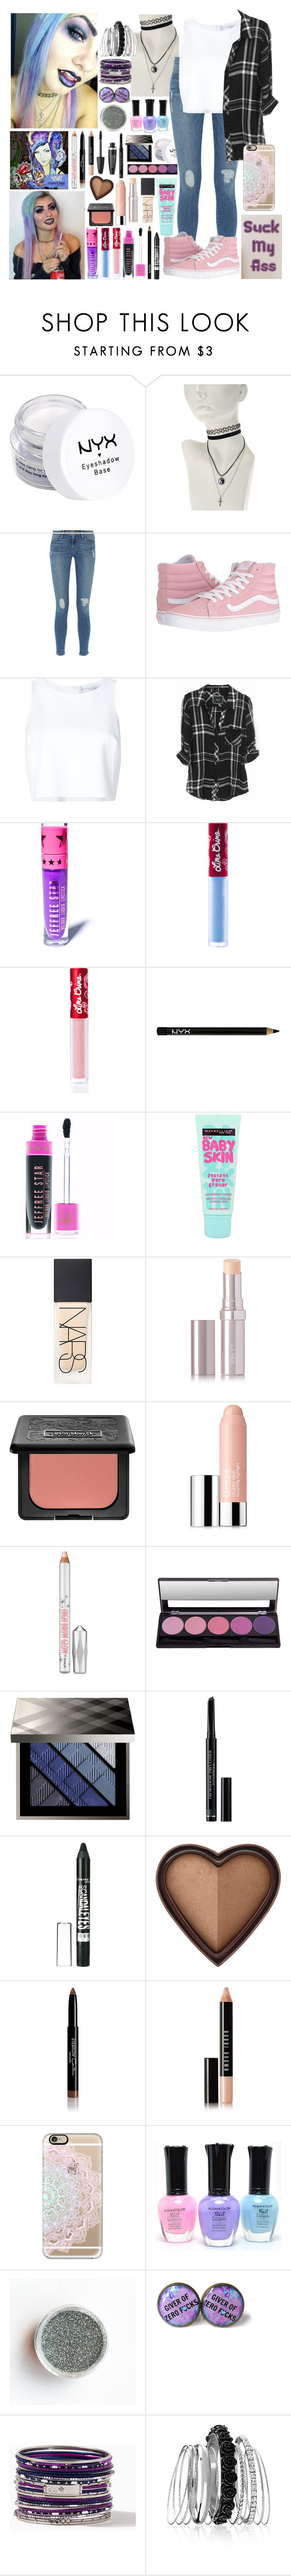 """HeyThereImShannon ~7~"" by i-am-the-one-and-only ❤ liked on Polyvore featuring NYX, Frame, Vans, Carolina Herrera, Rails, Lime Crime, Maybelline, NARS Cosmetics, La Mer and Kat Von D"